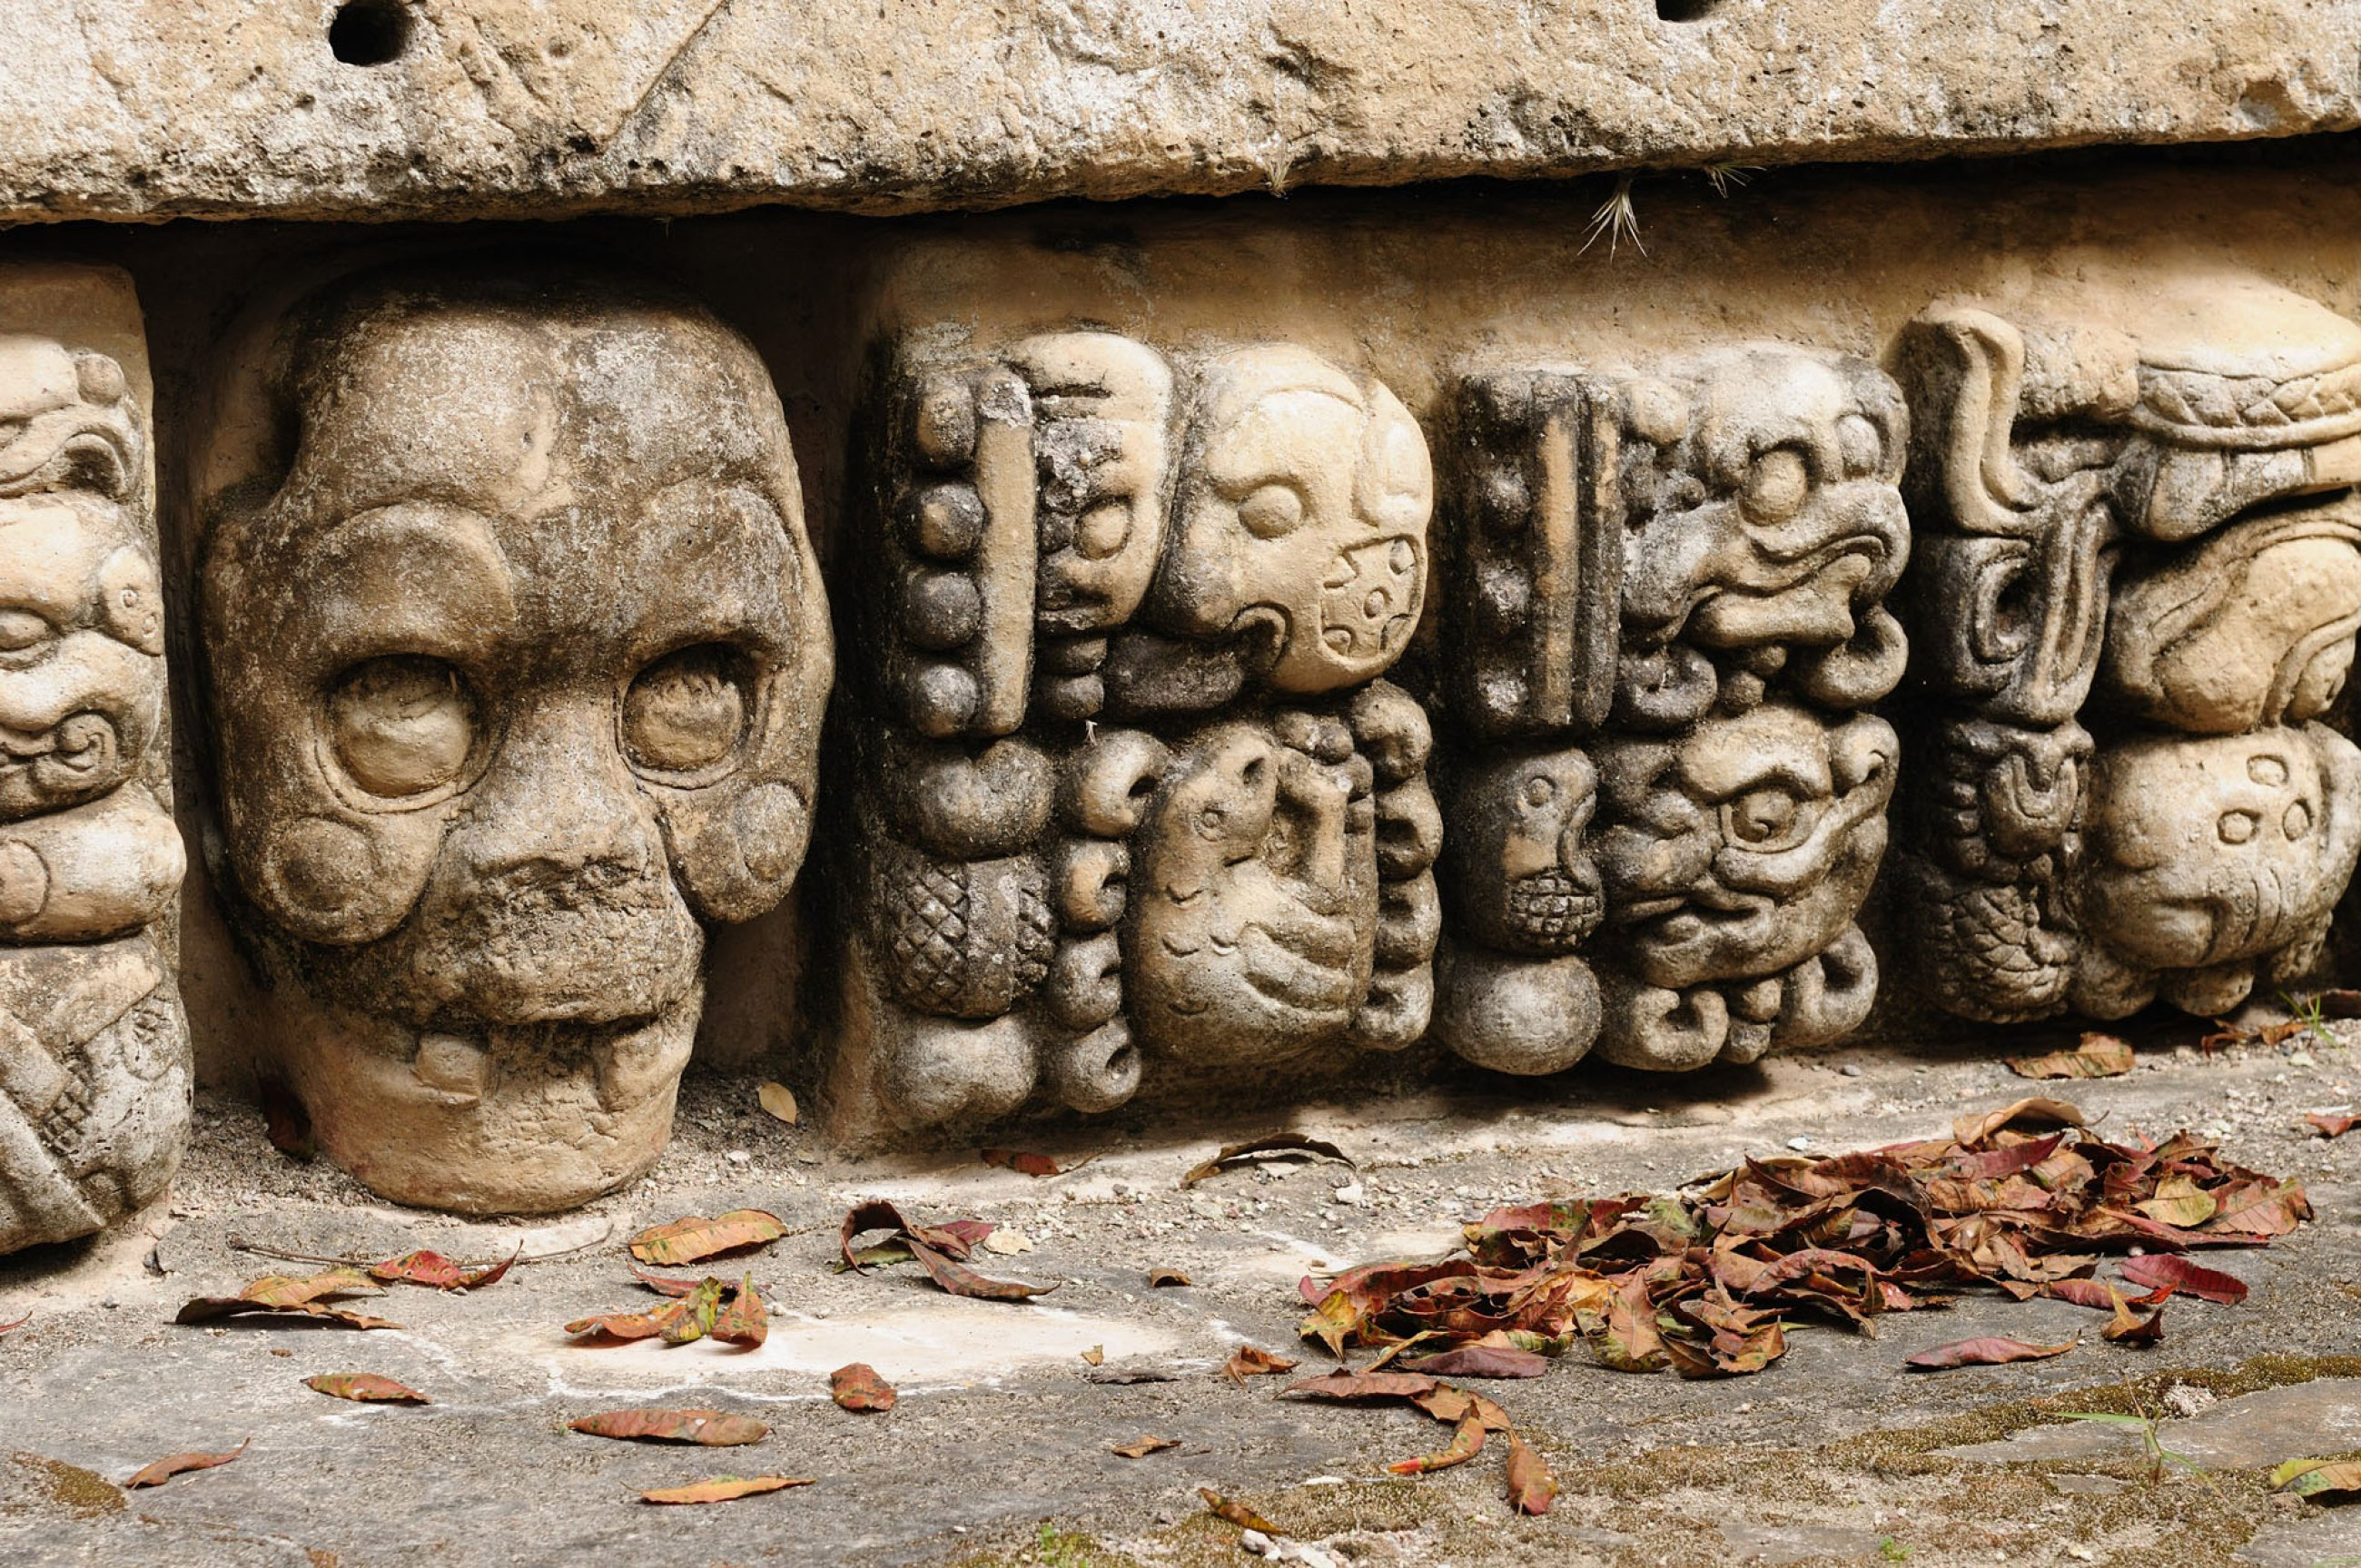 https://bubo.sk/uploads/galleries/7388/copan-mayan-ruins-in-honduras-dreamstime-xl-29453483.jpg